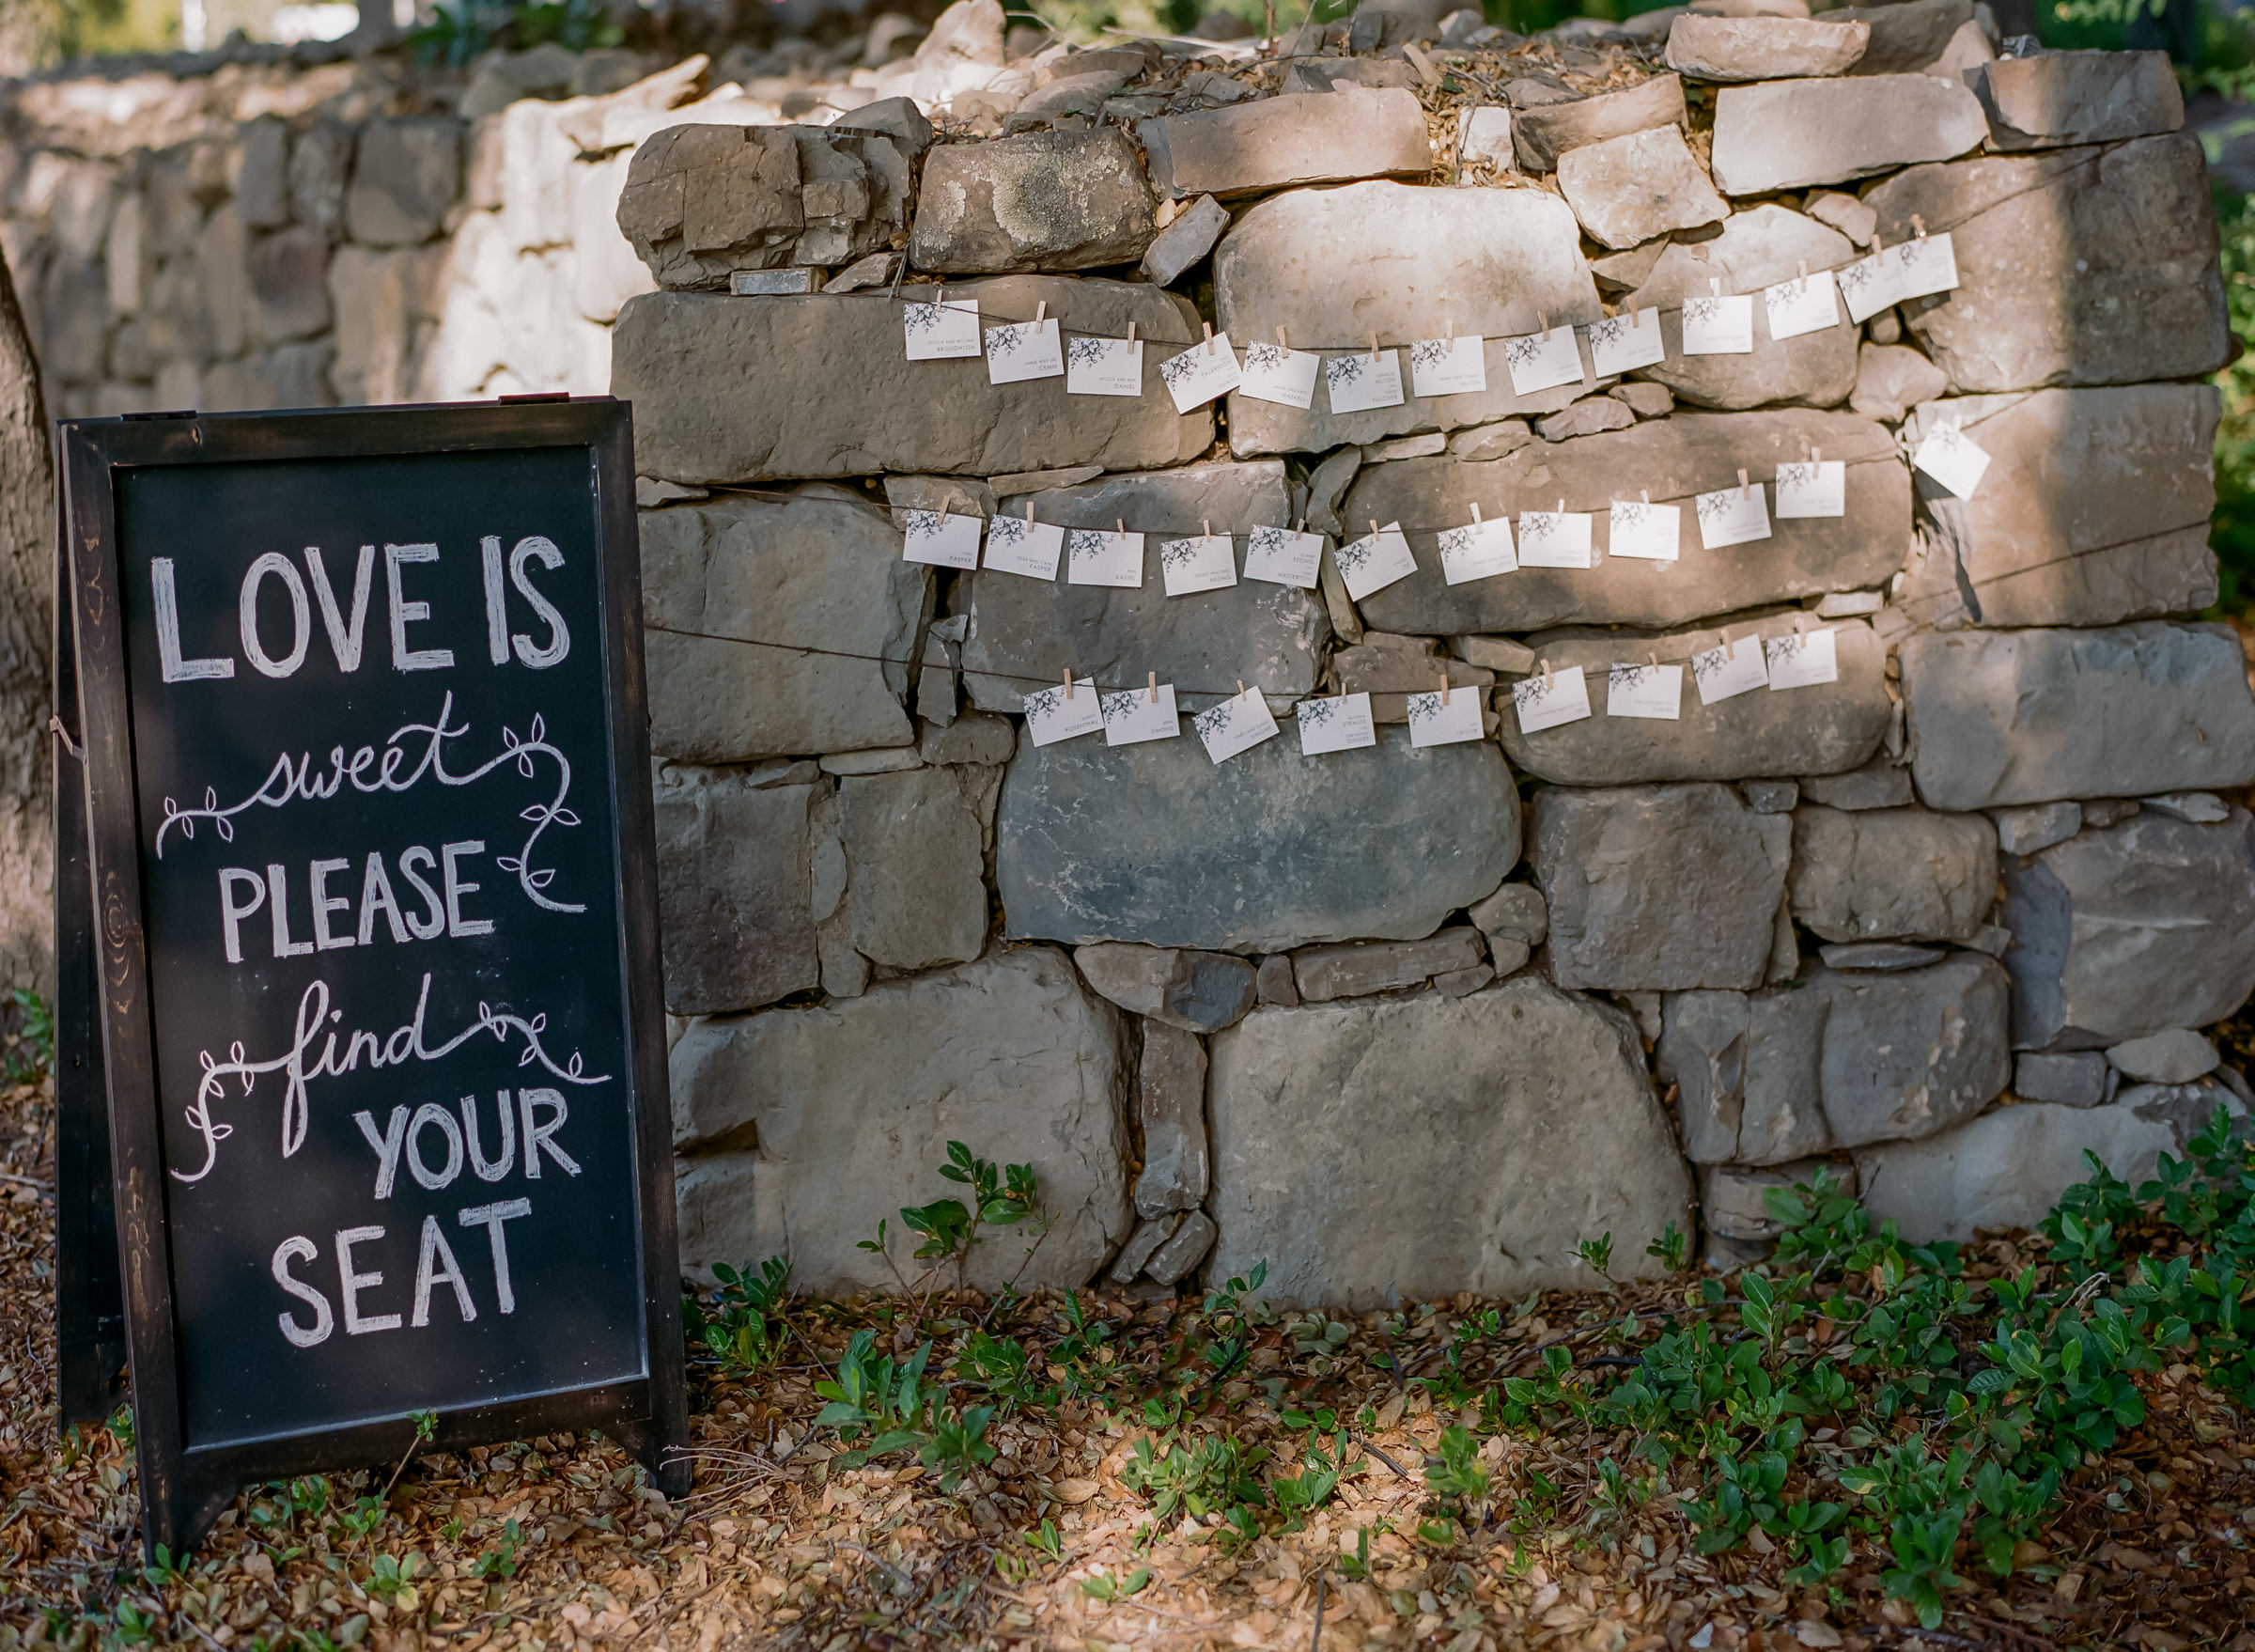 seating-name-cards-hanging-on-rustic-stone-wall-with-chalkboard-sign-amyandstuart-photography